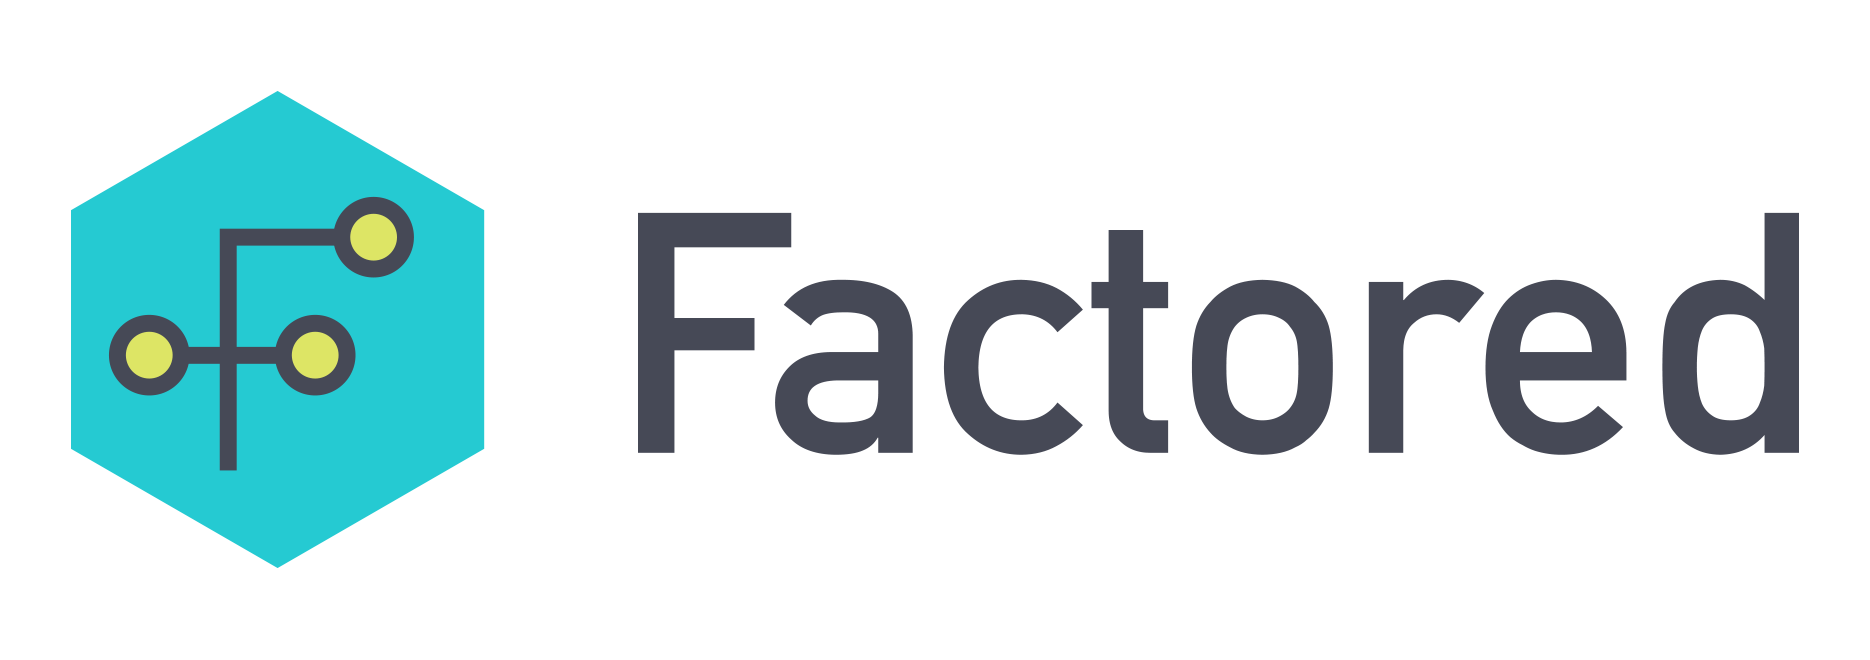 Factored logo